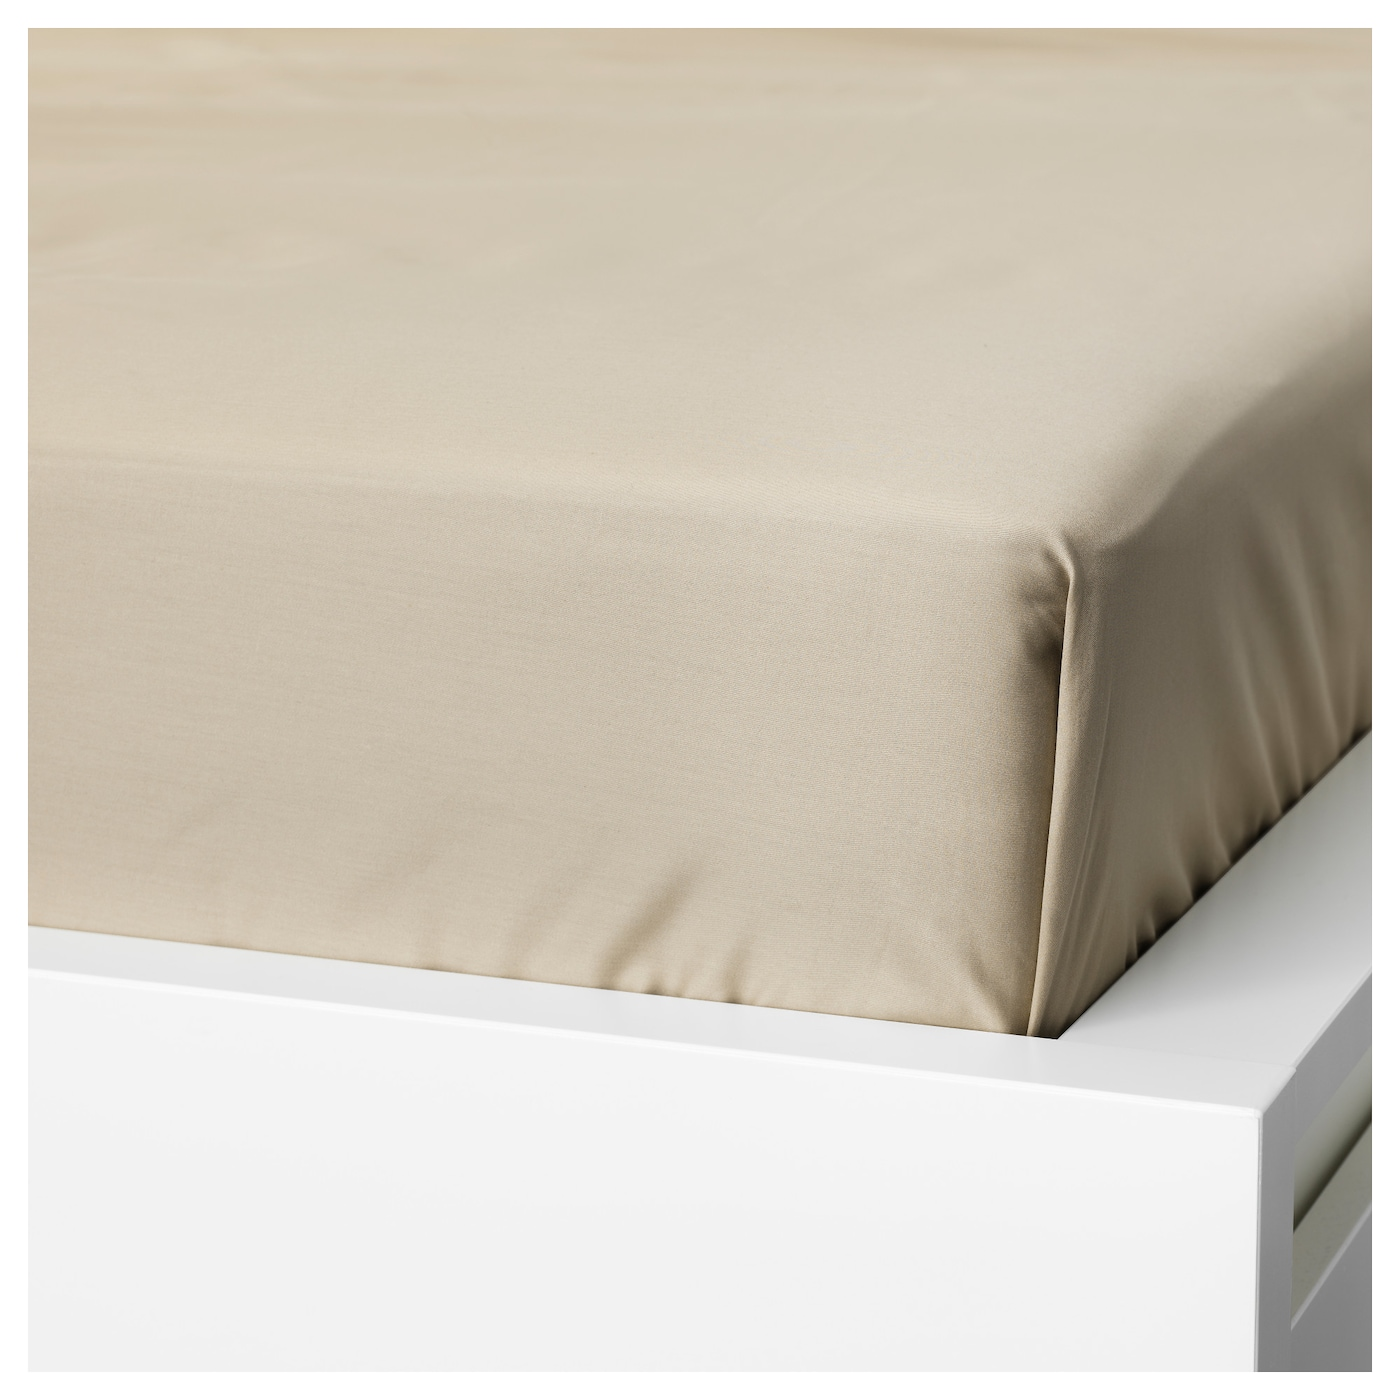 IKEA NATTJASMIN sheet Fits beds that are 160-180 cm wide.